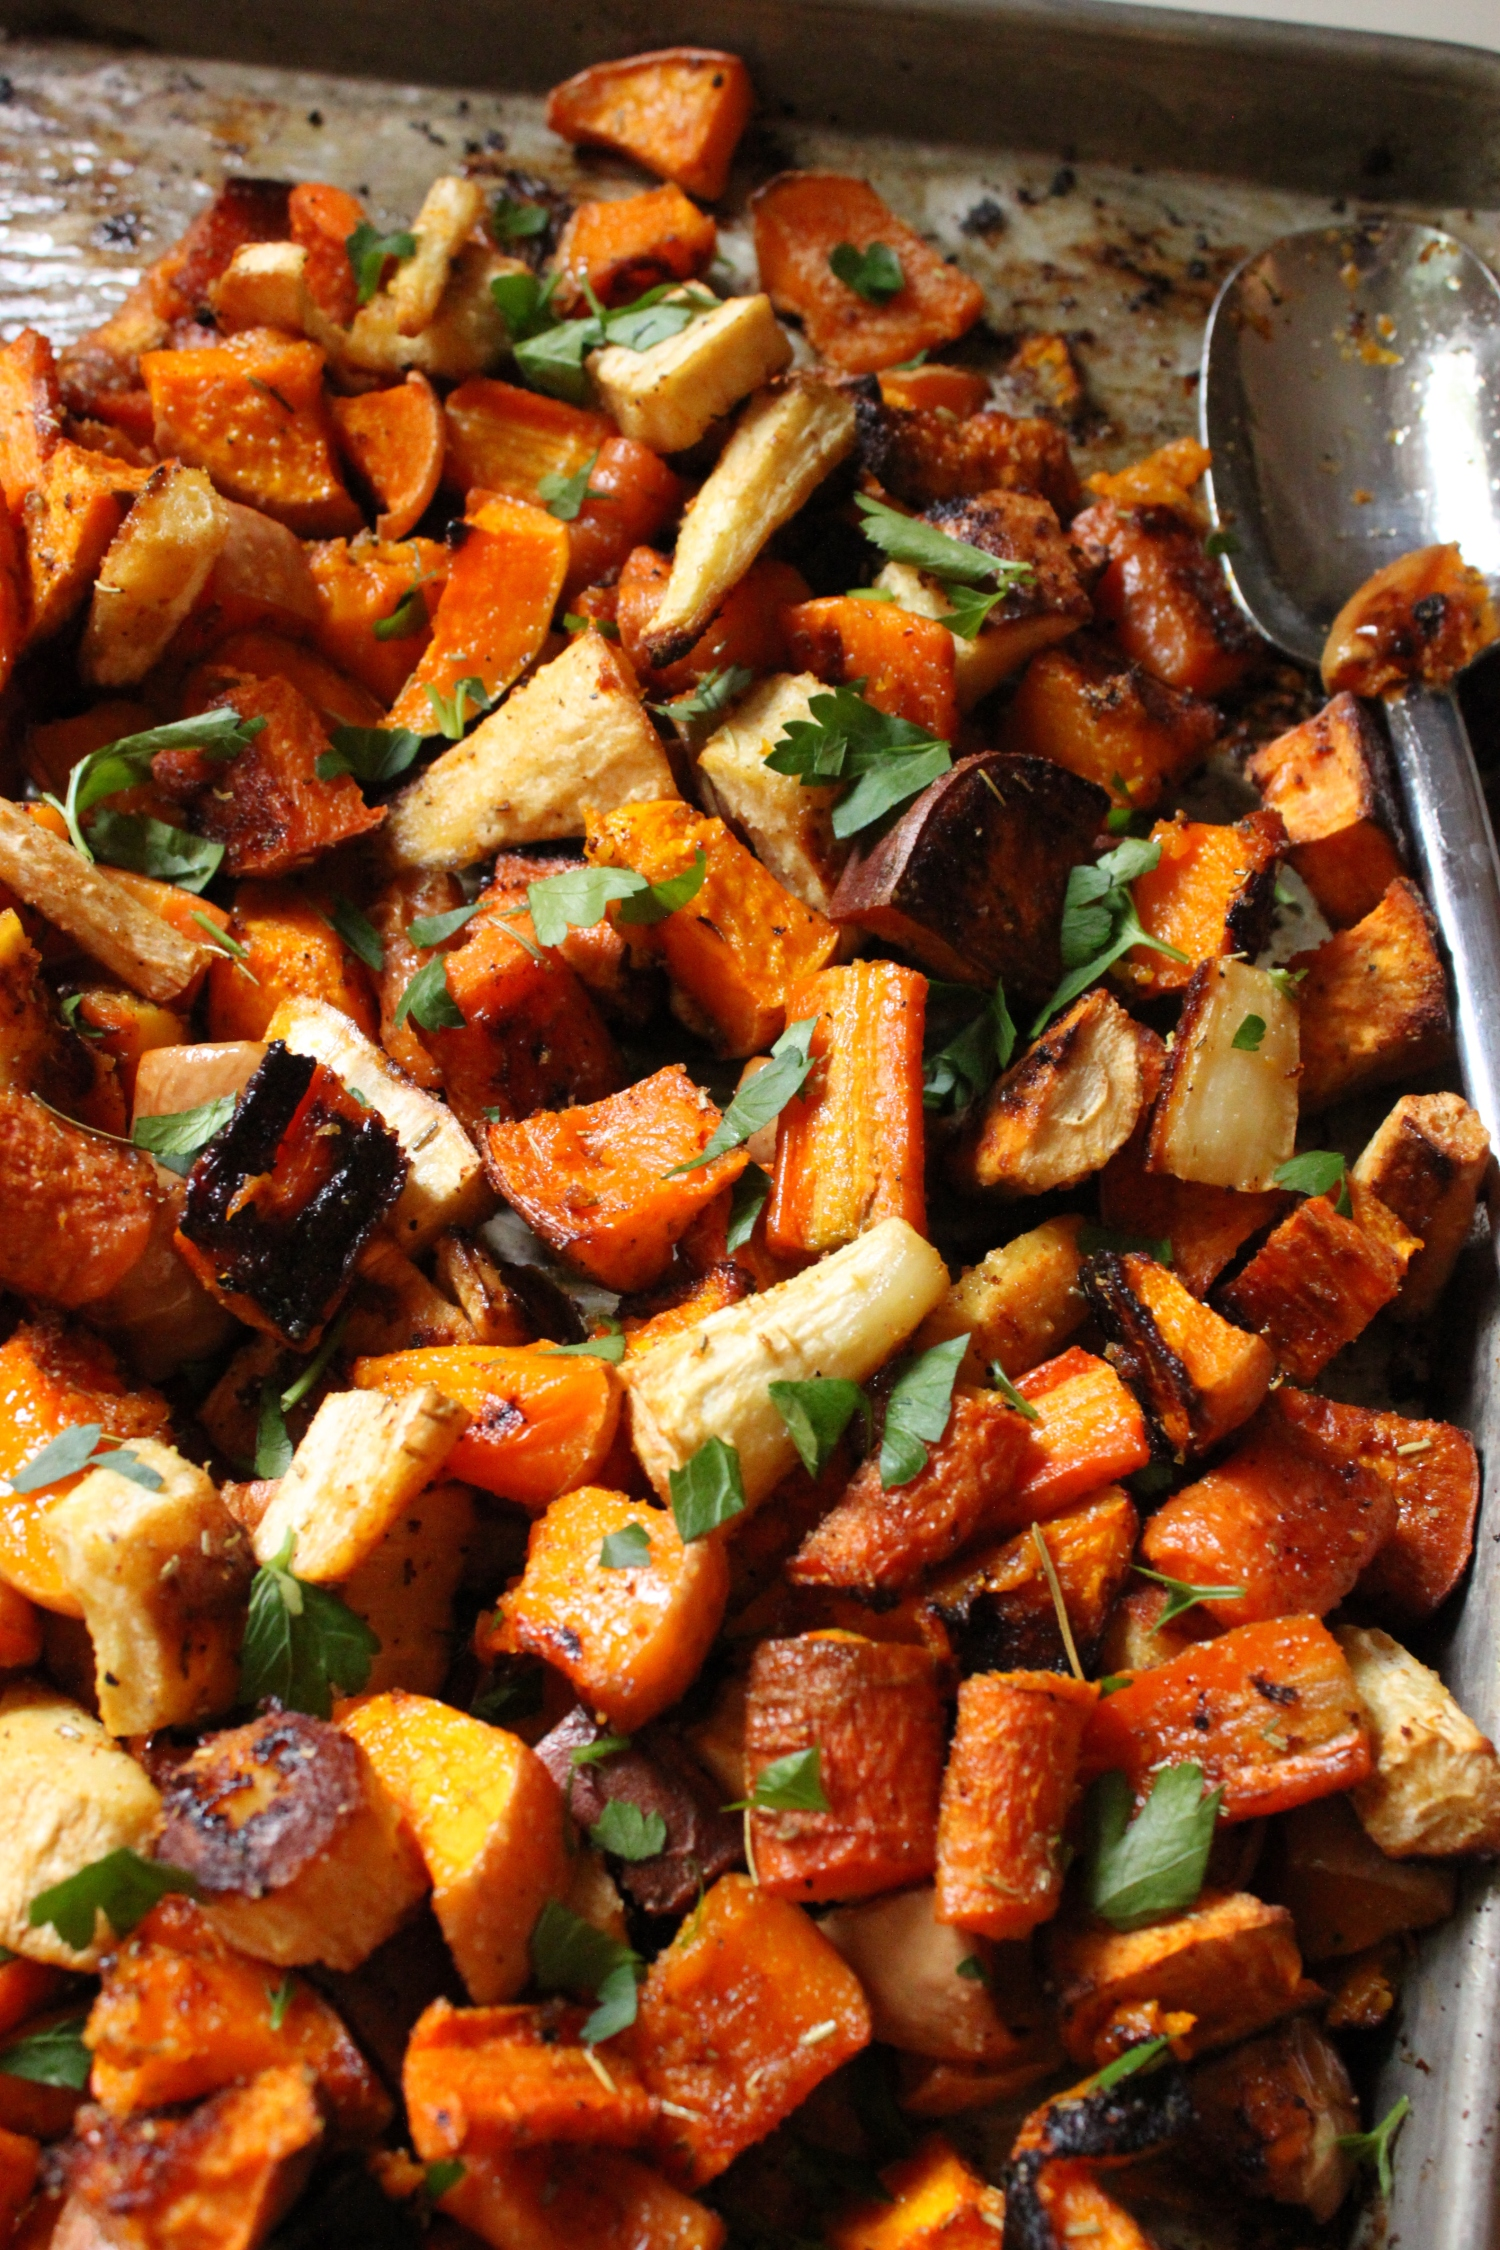 Roasted Winter Vegetables2